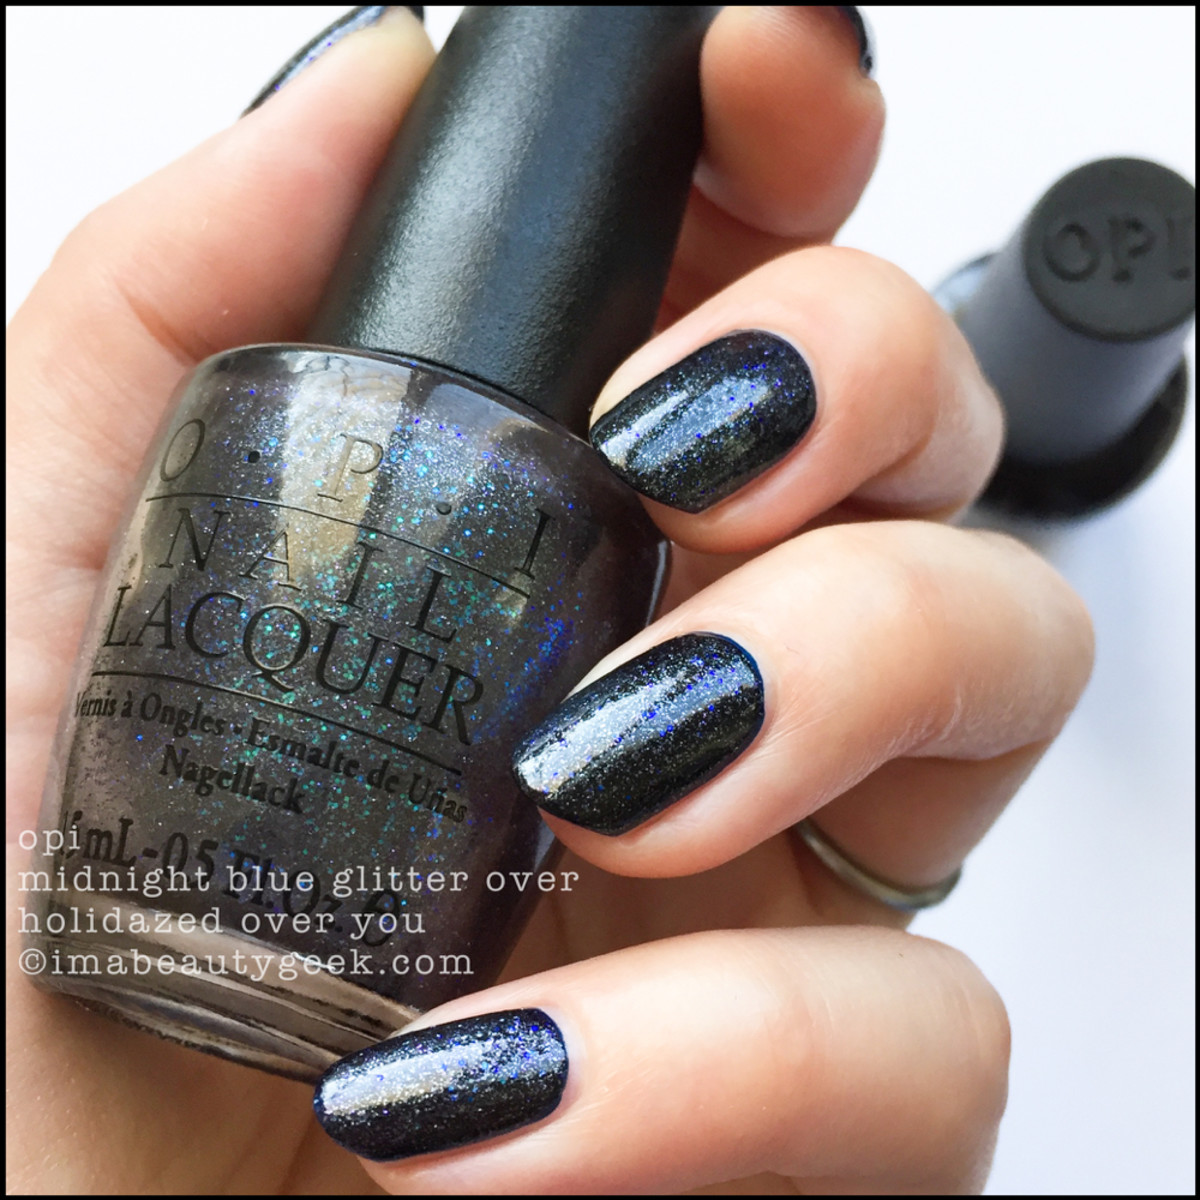 OPI Midnight Blue Glitter over Holidazed Over you - Love OPI XOXO Holiday 2017 Collection